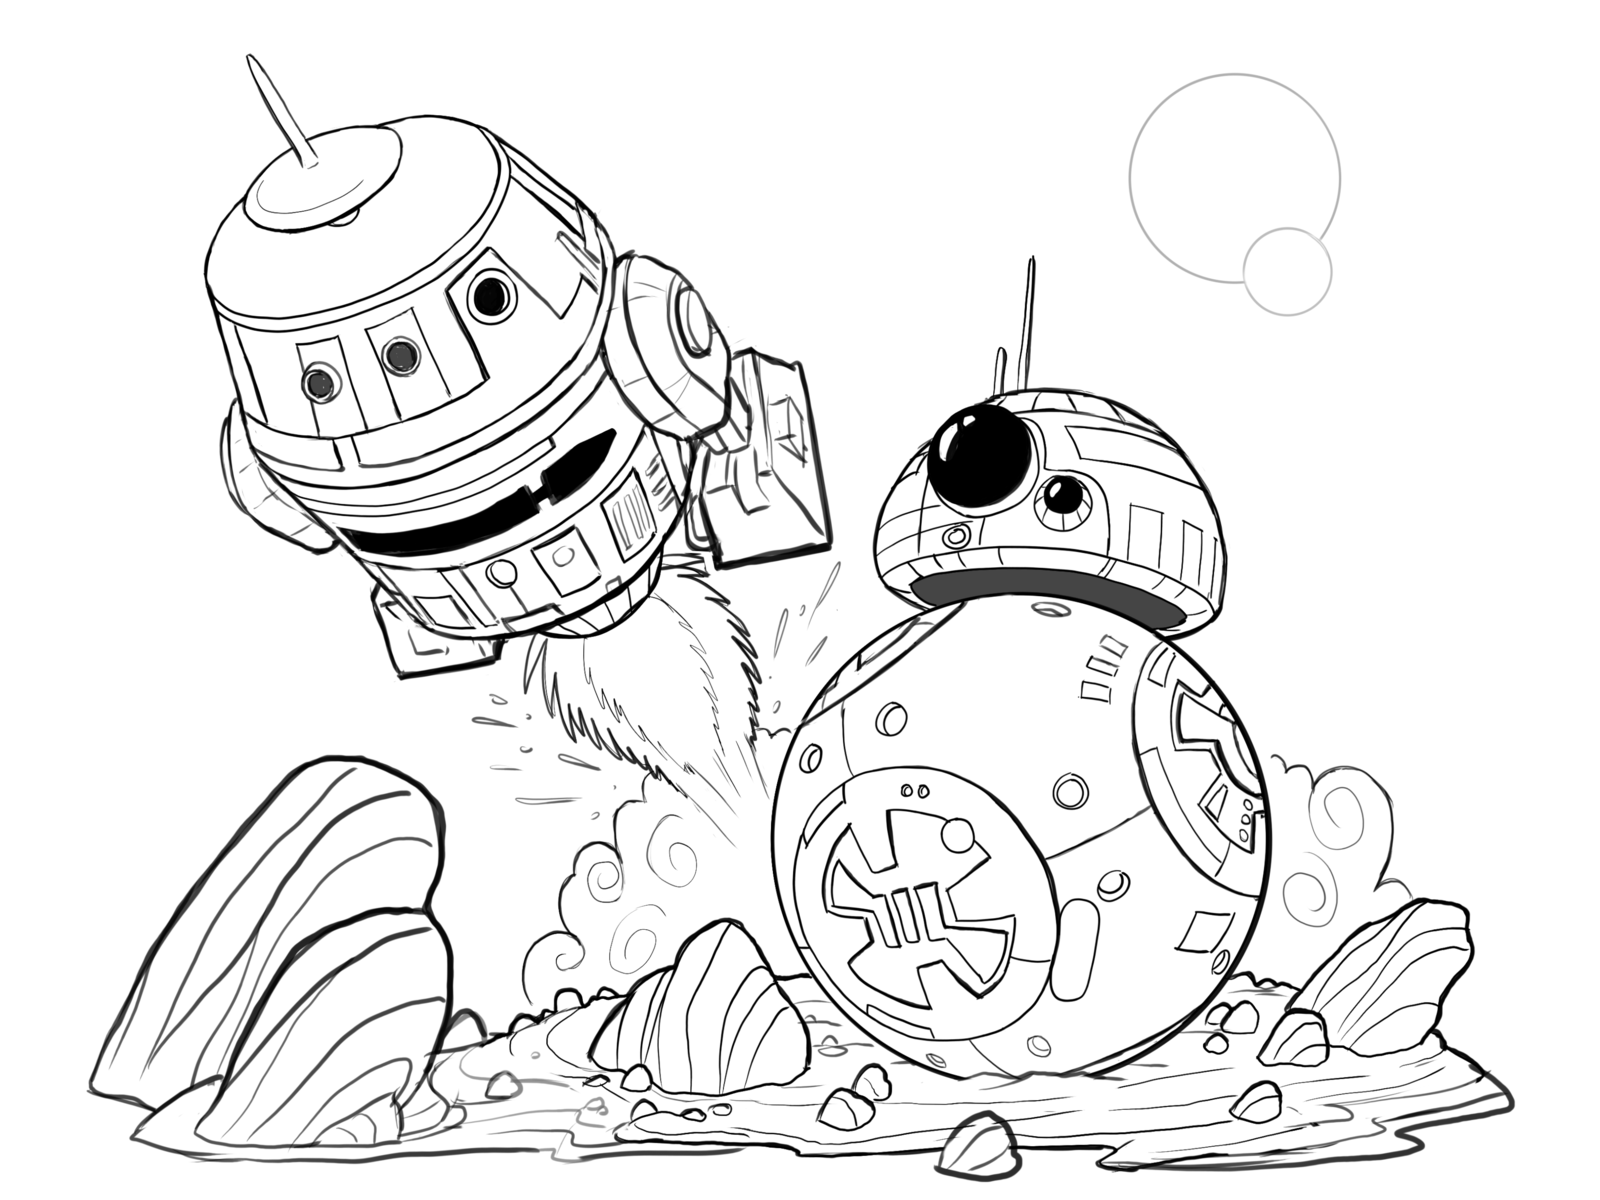 Hera and Chopper Star Wars Rebels WiP by cartoonstudy on DeviantArt